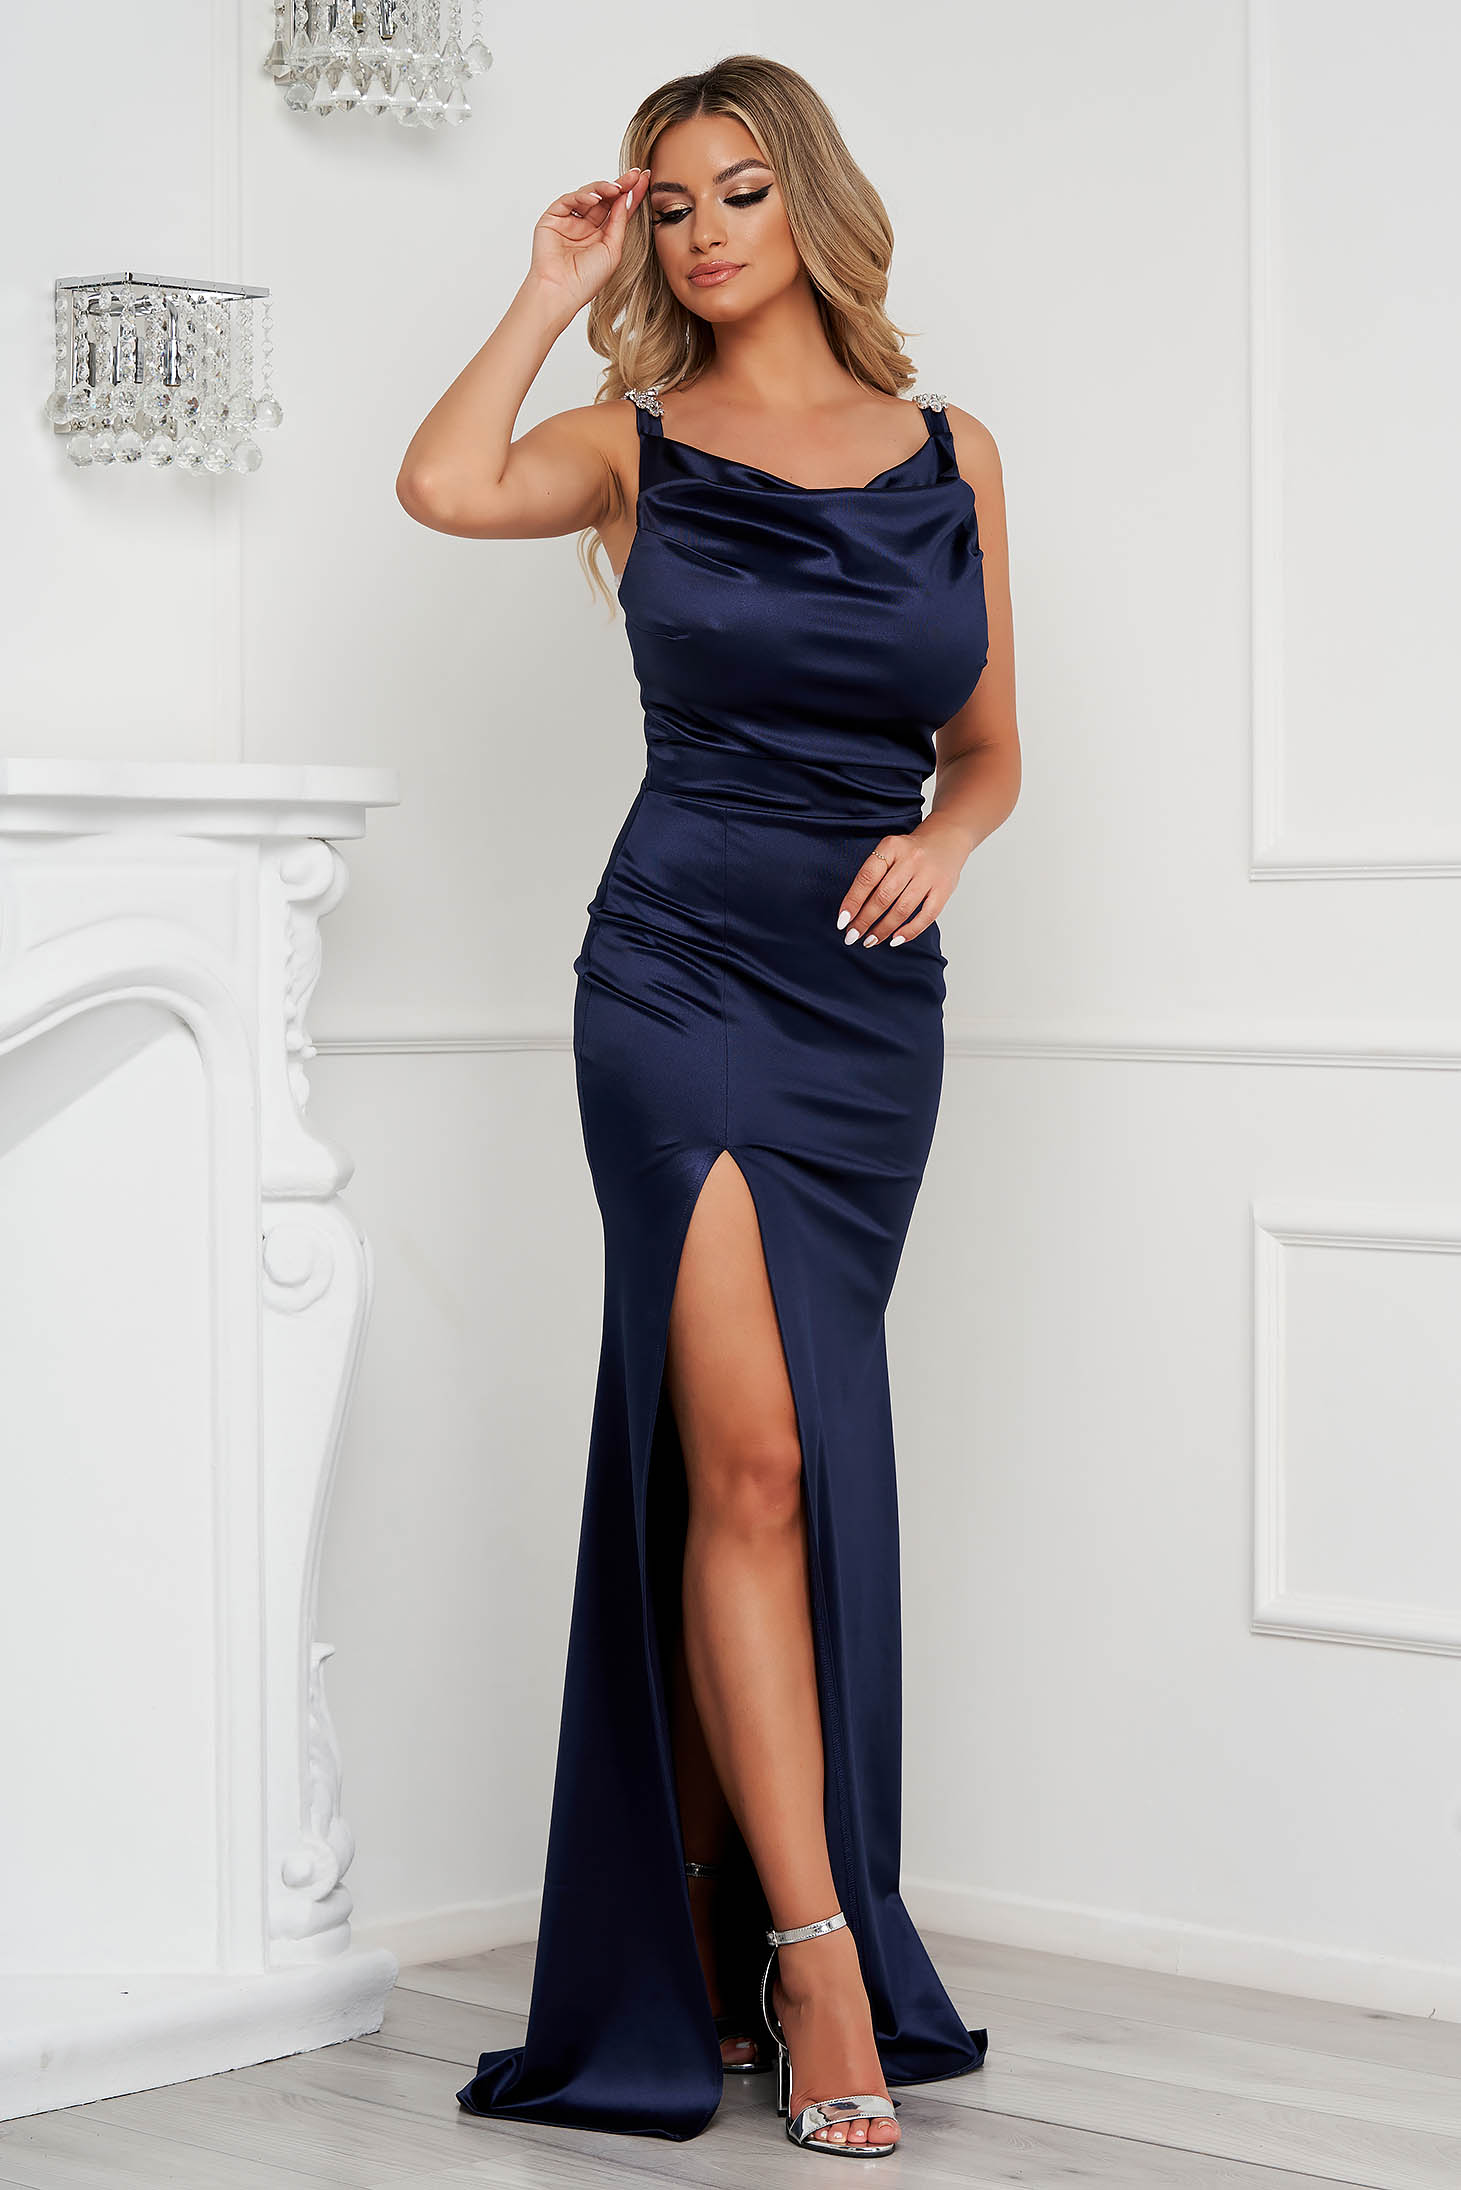 StarShinerS darkblue occasional long mermaid cut dress with embellished accessories from satin cowl neck